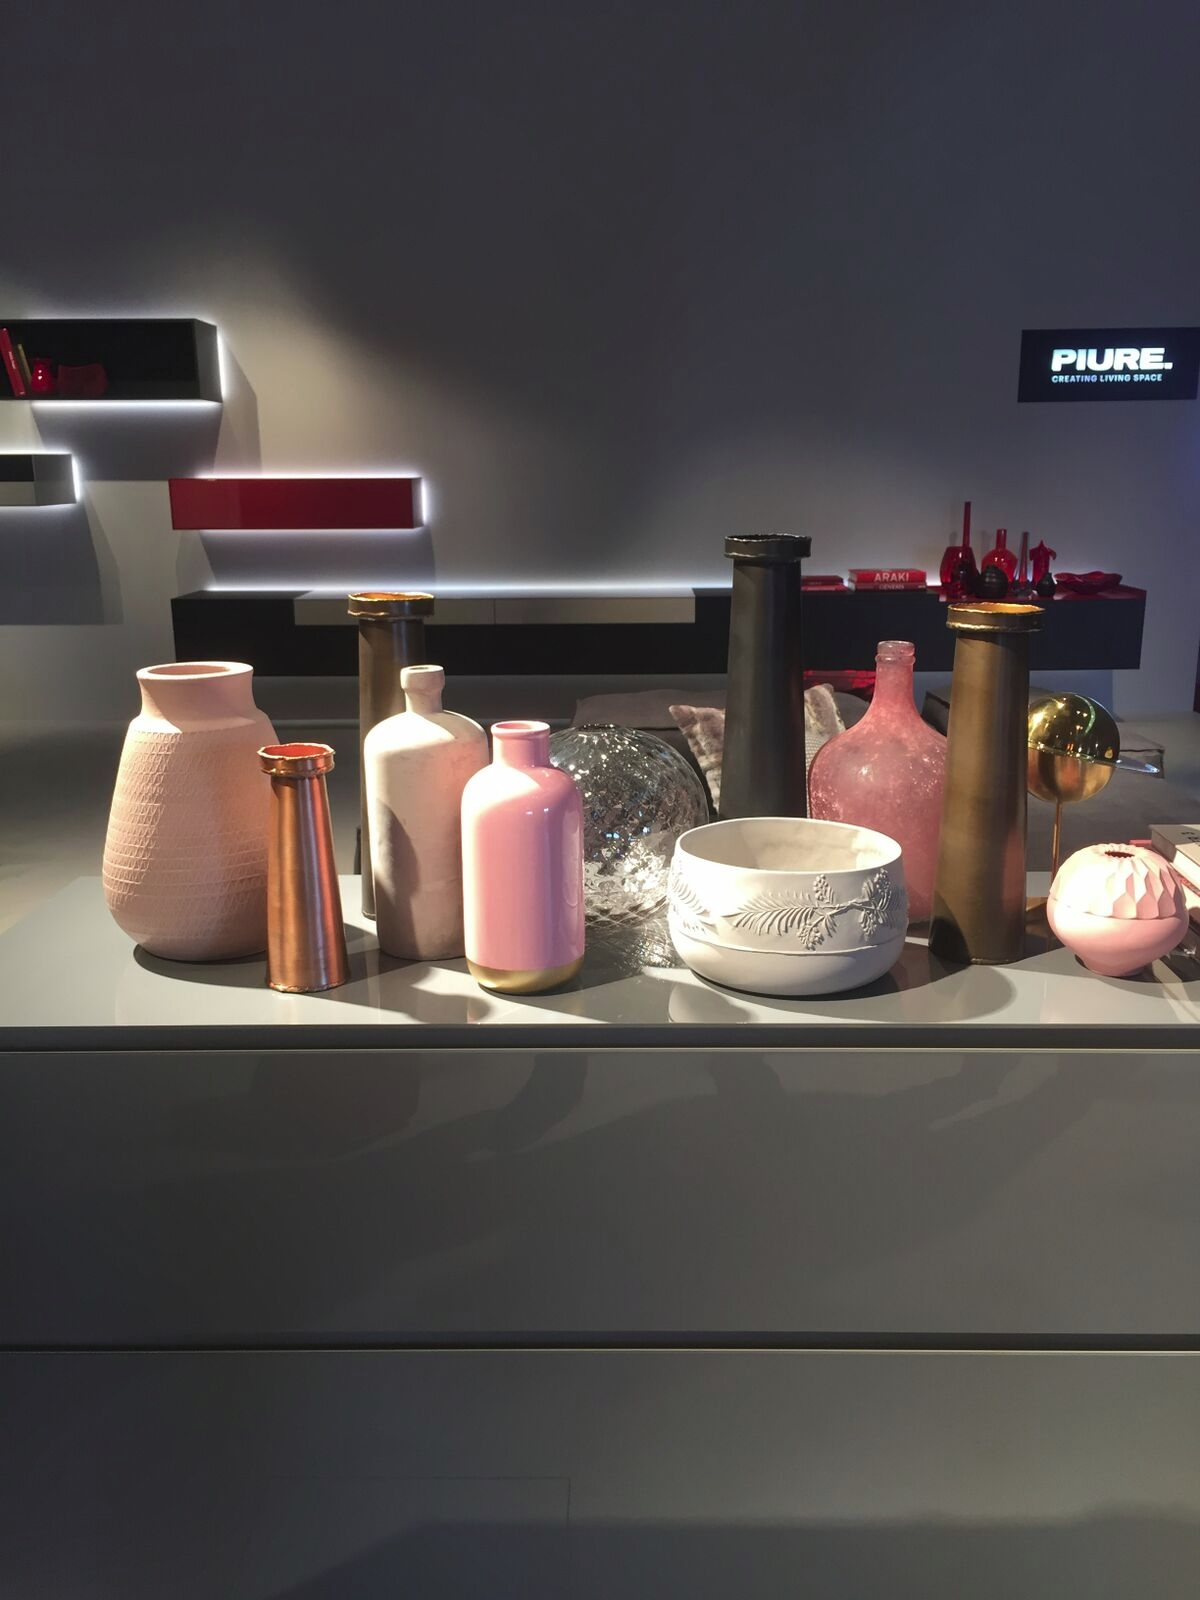 Layering vases in rosy shades